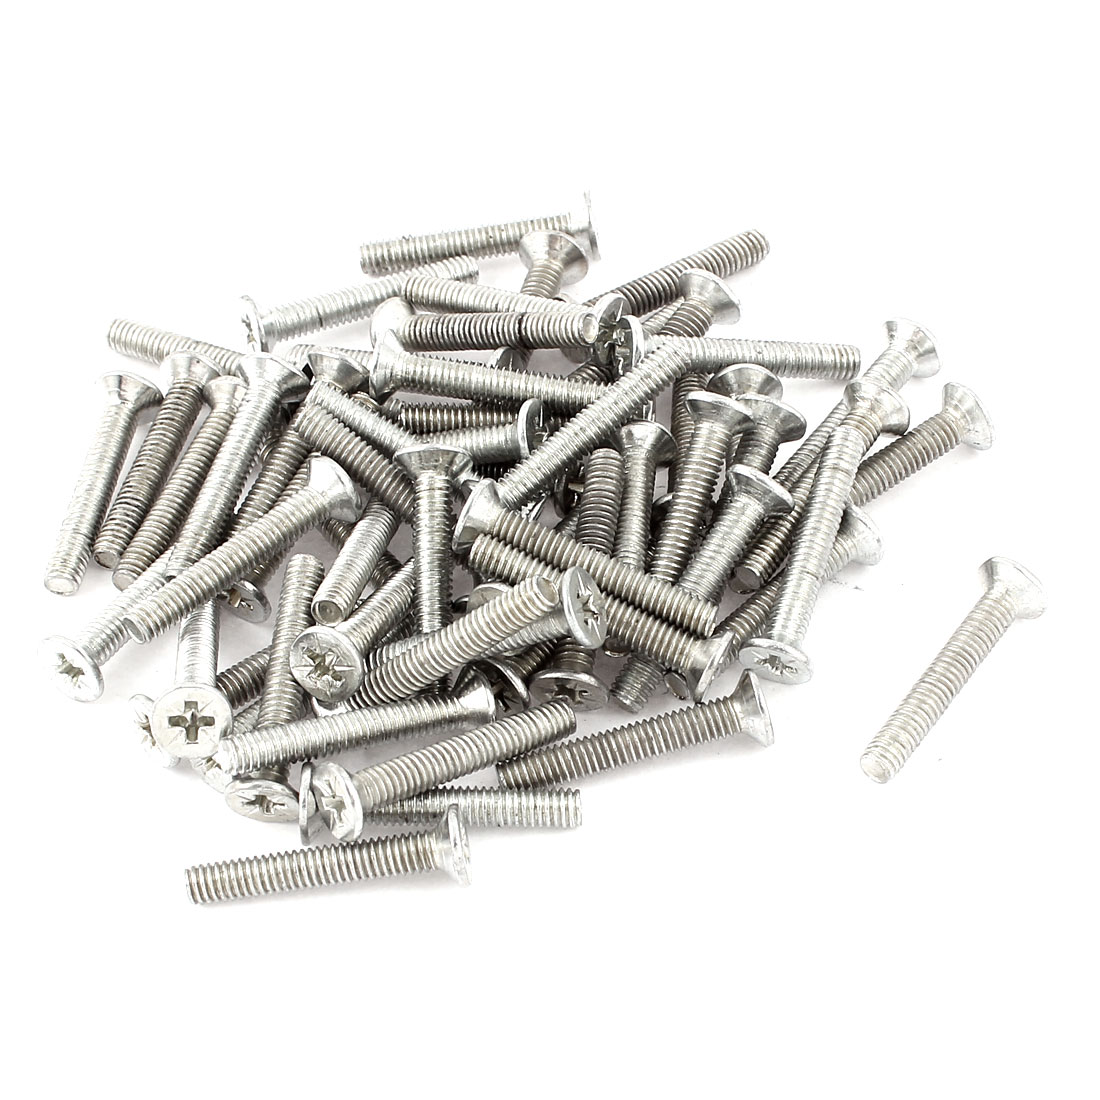 M4x20 Flat Head Cross Recessed Stainless Steel Screw Silver Tone 60pcs